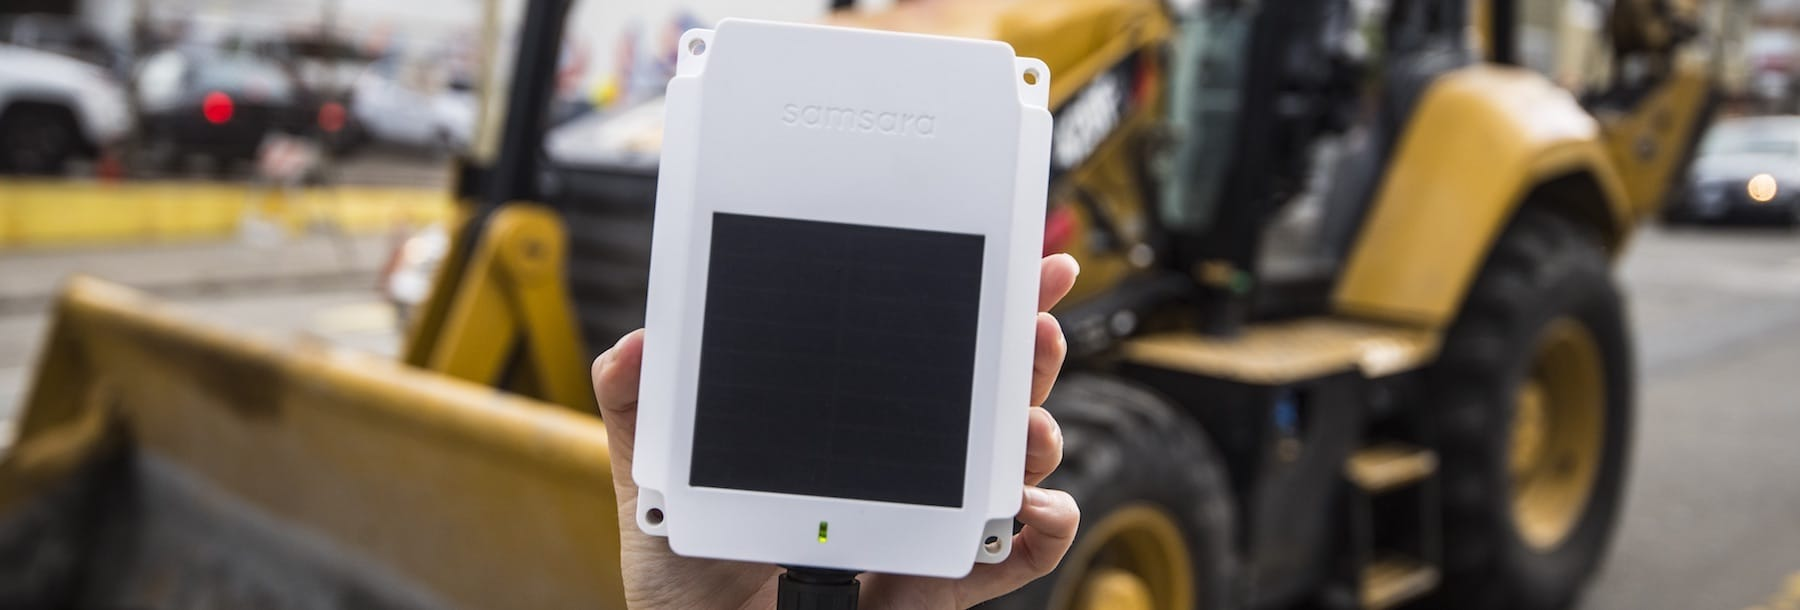 Introducing the Solar-Powered AG24 Gateway for Trailers & Mobile Assets